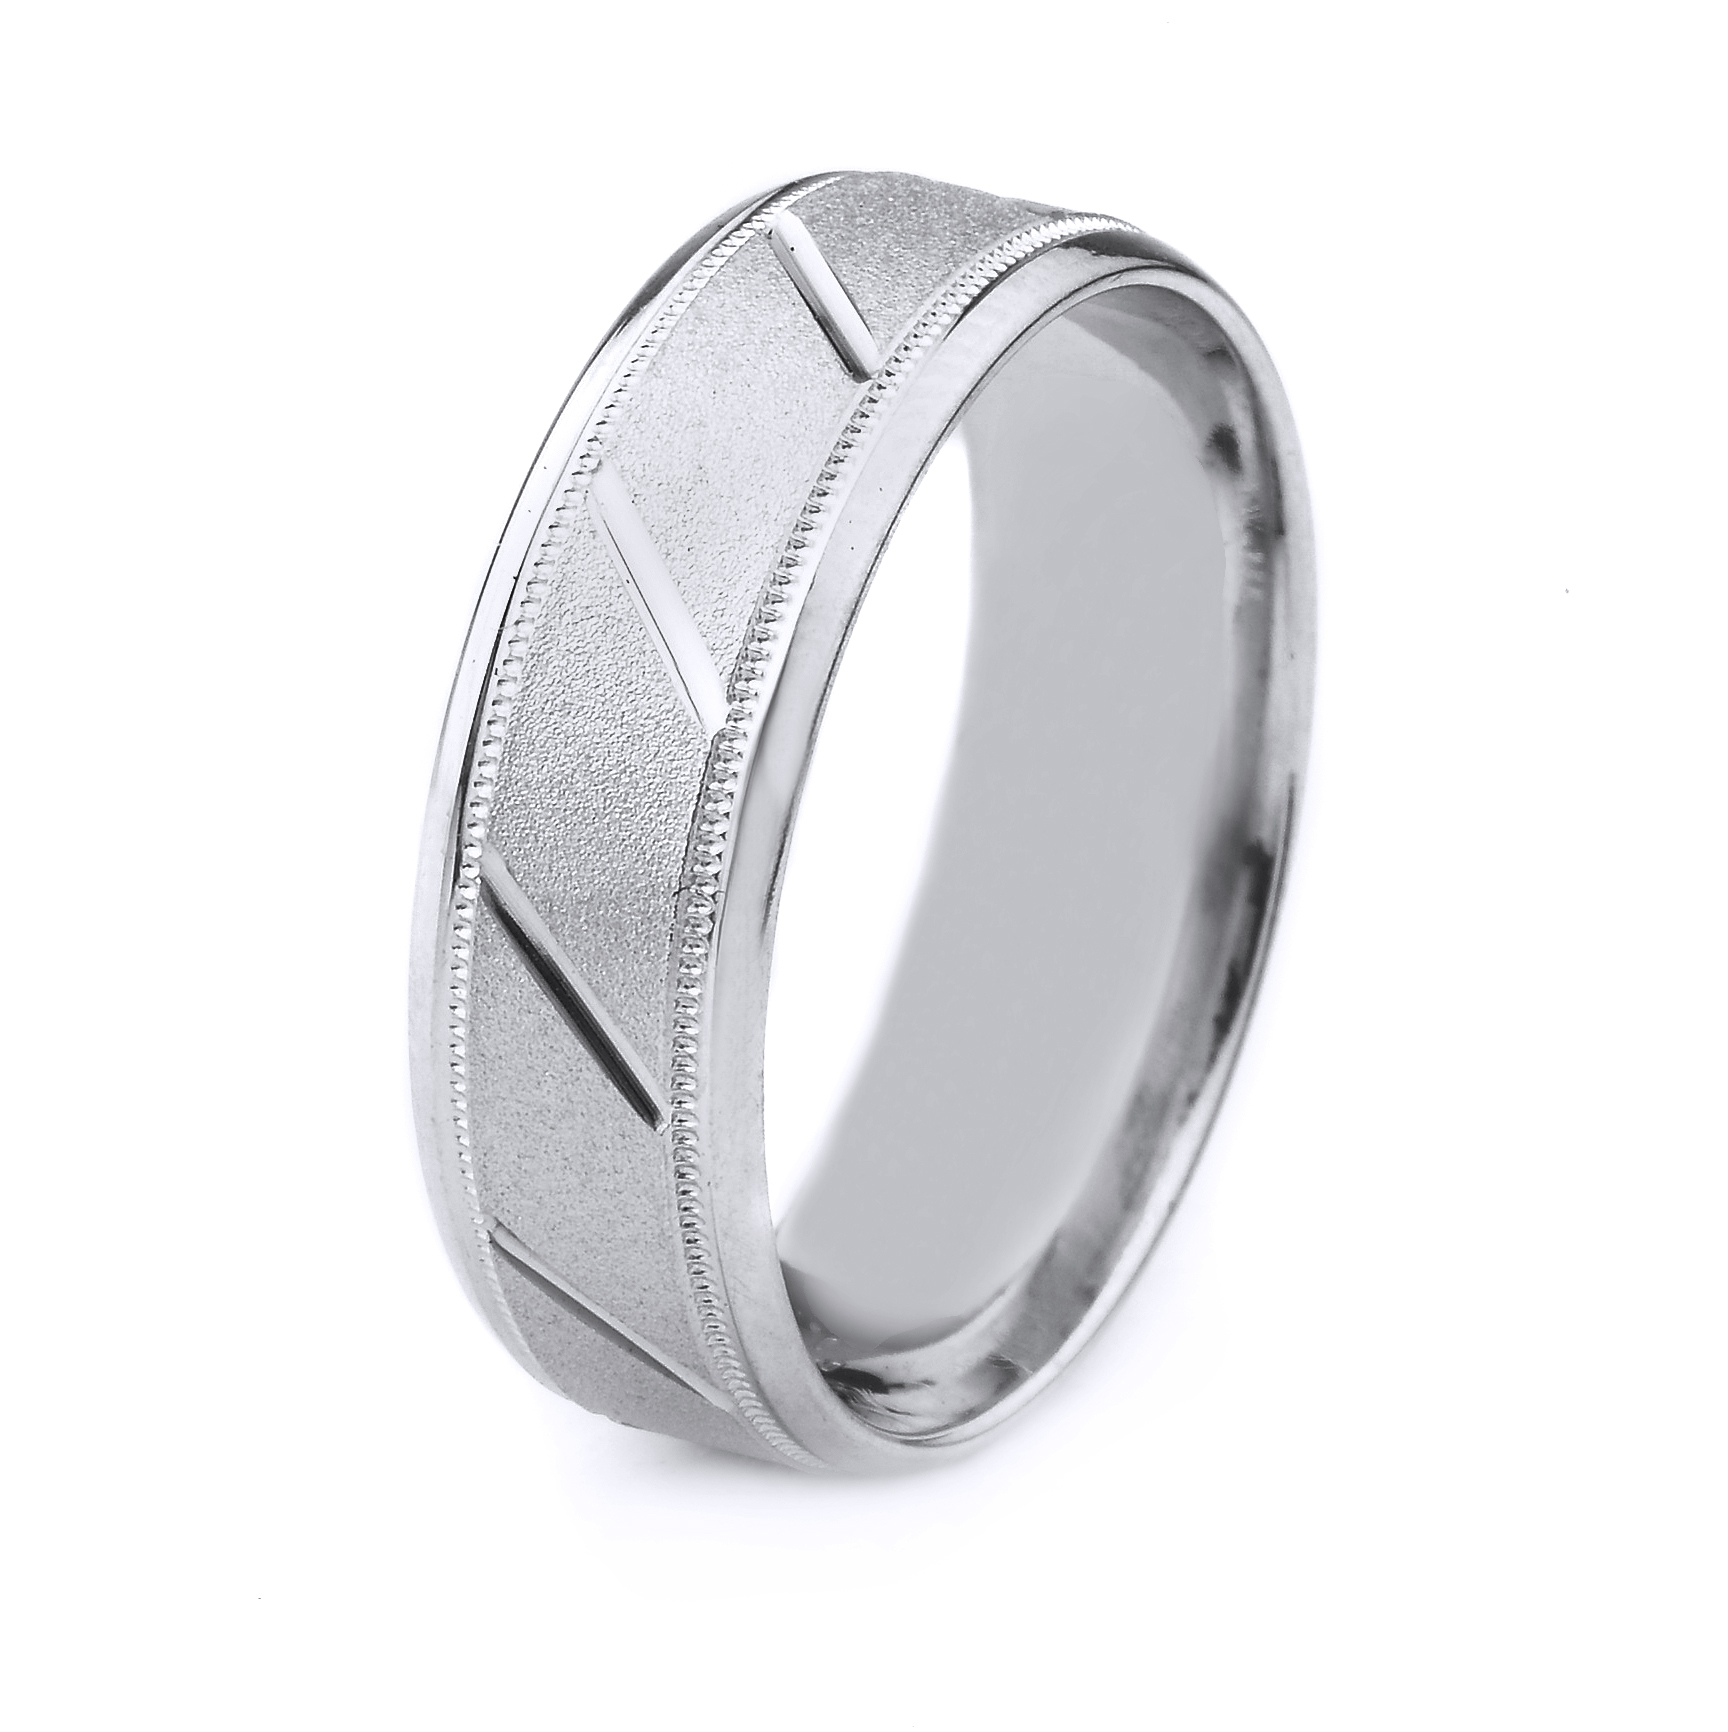 18k Gold Men's Wedding Band With Stone Finish And Slant Cut With Current Diamond Slant Anniversary Bands In White Gold (View 17 of 25)